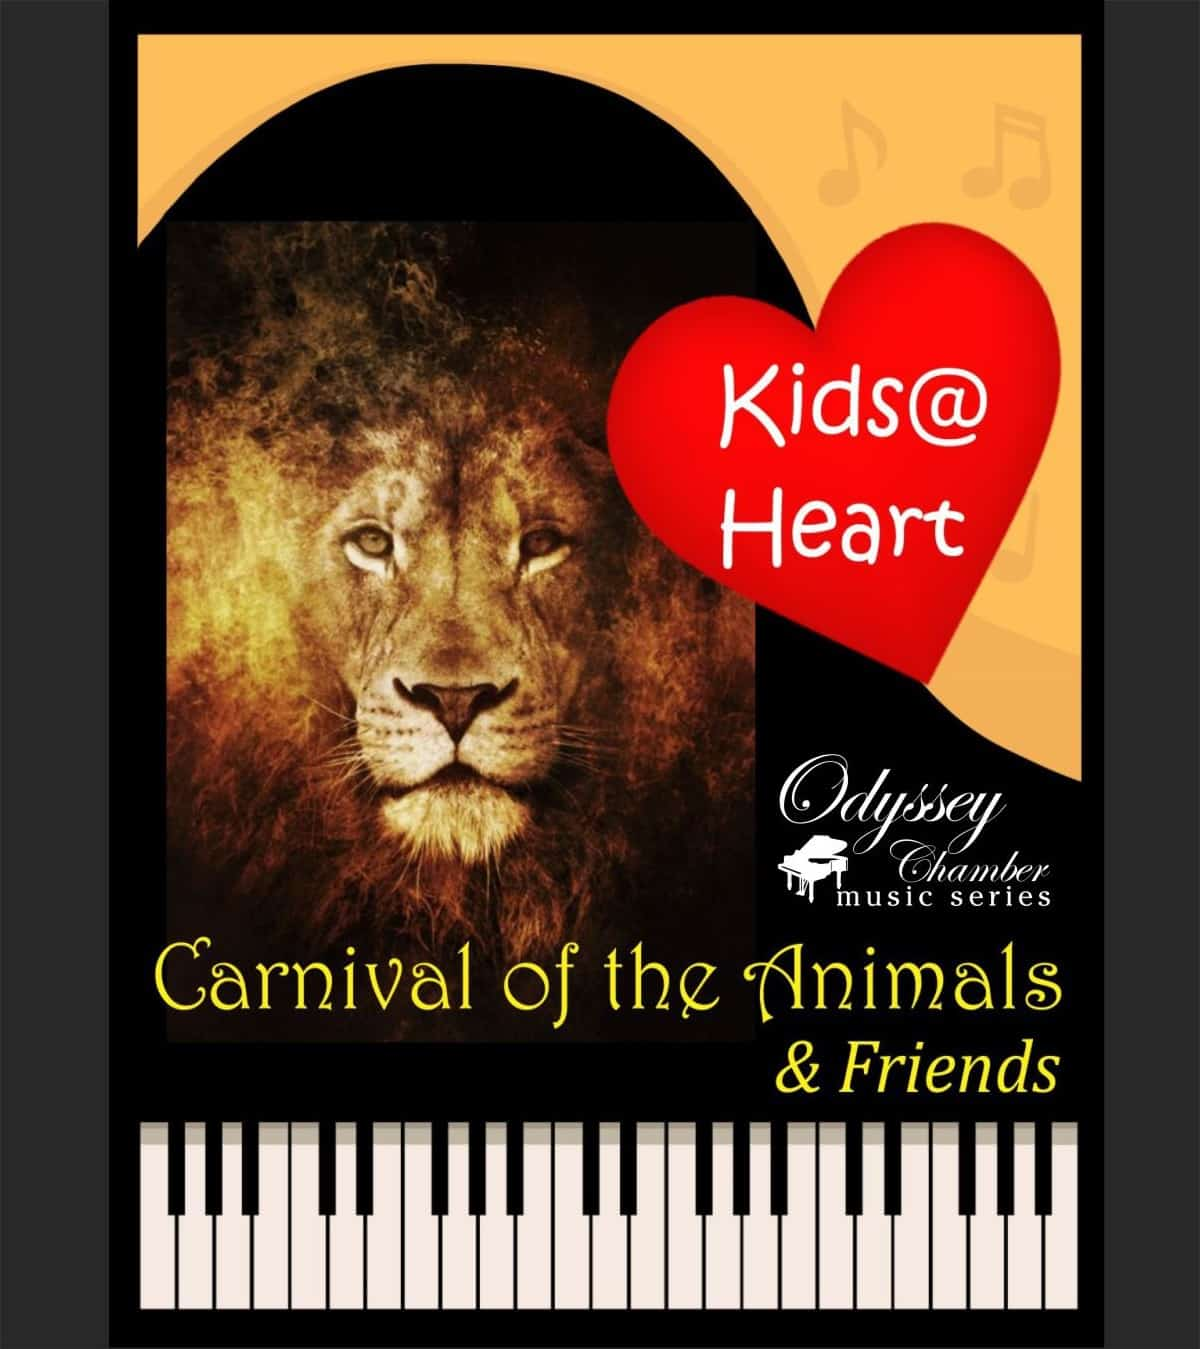 Odyssey: Kids@Heart - Carnival of the Animals & Friends